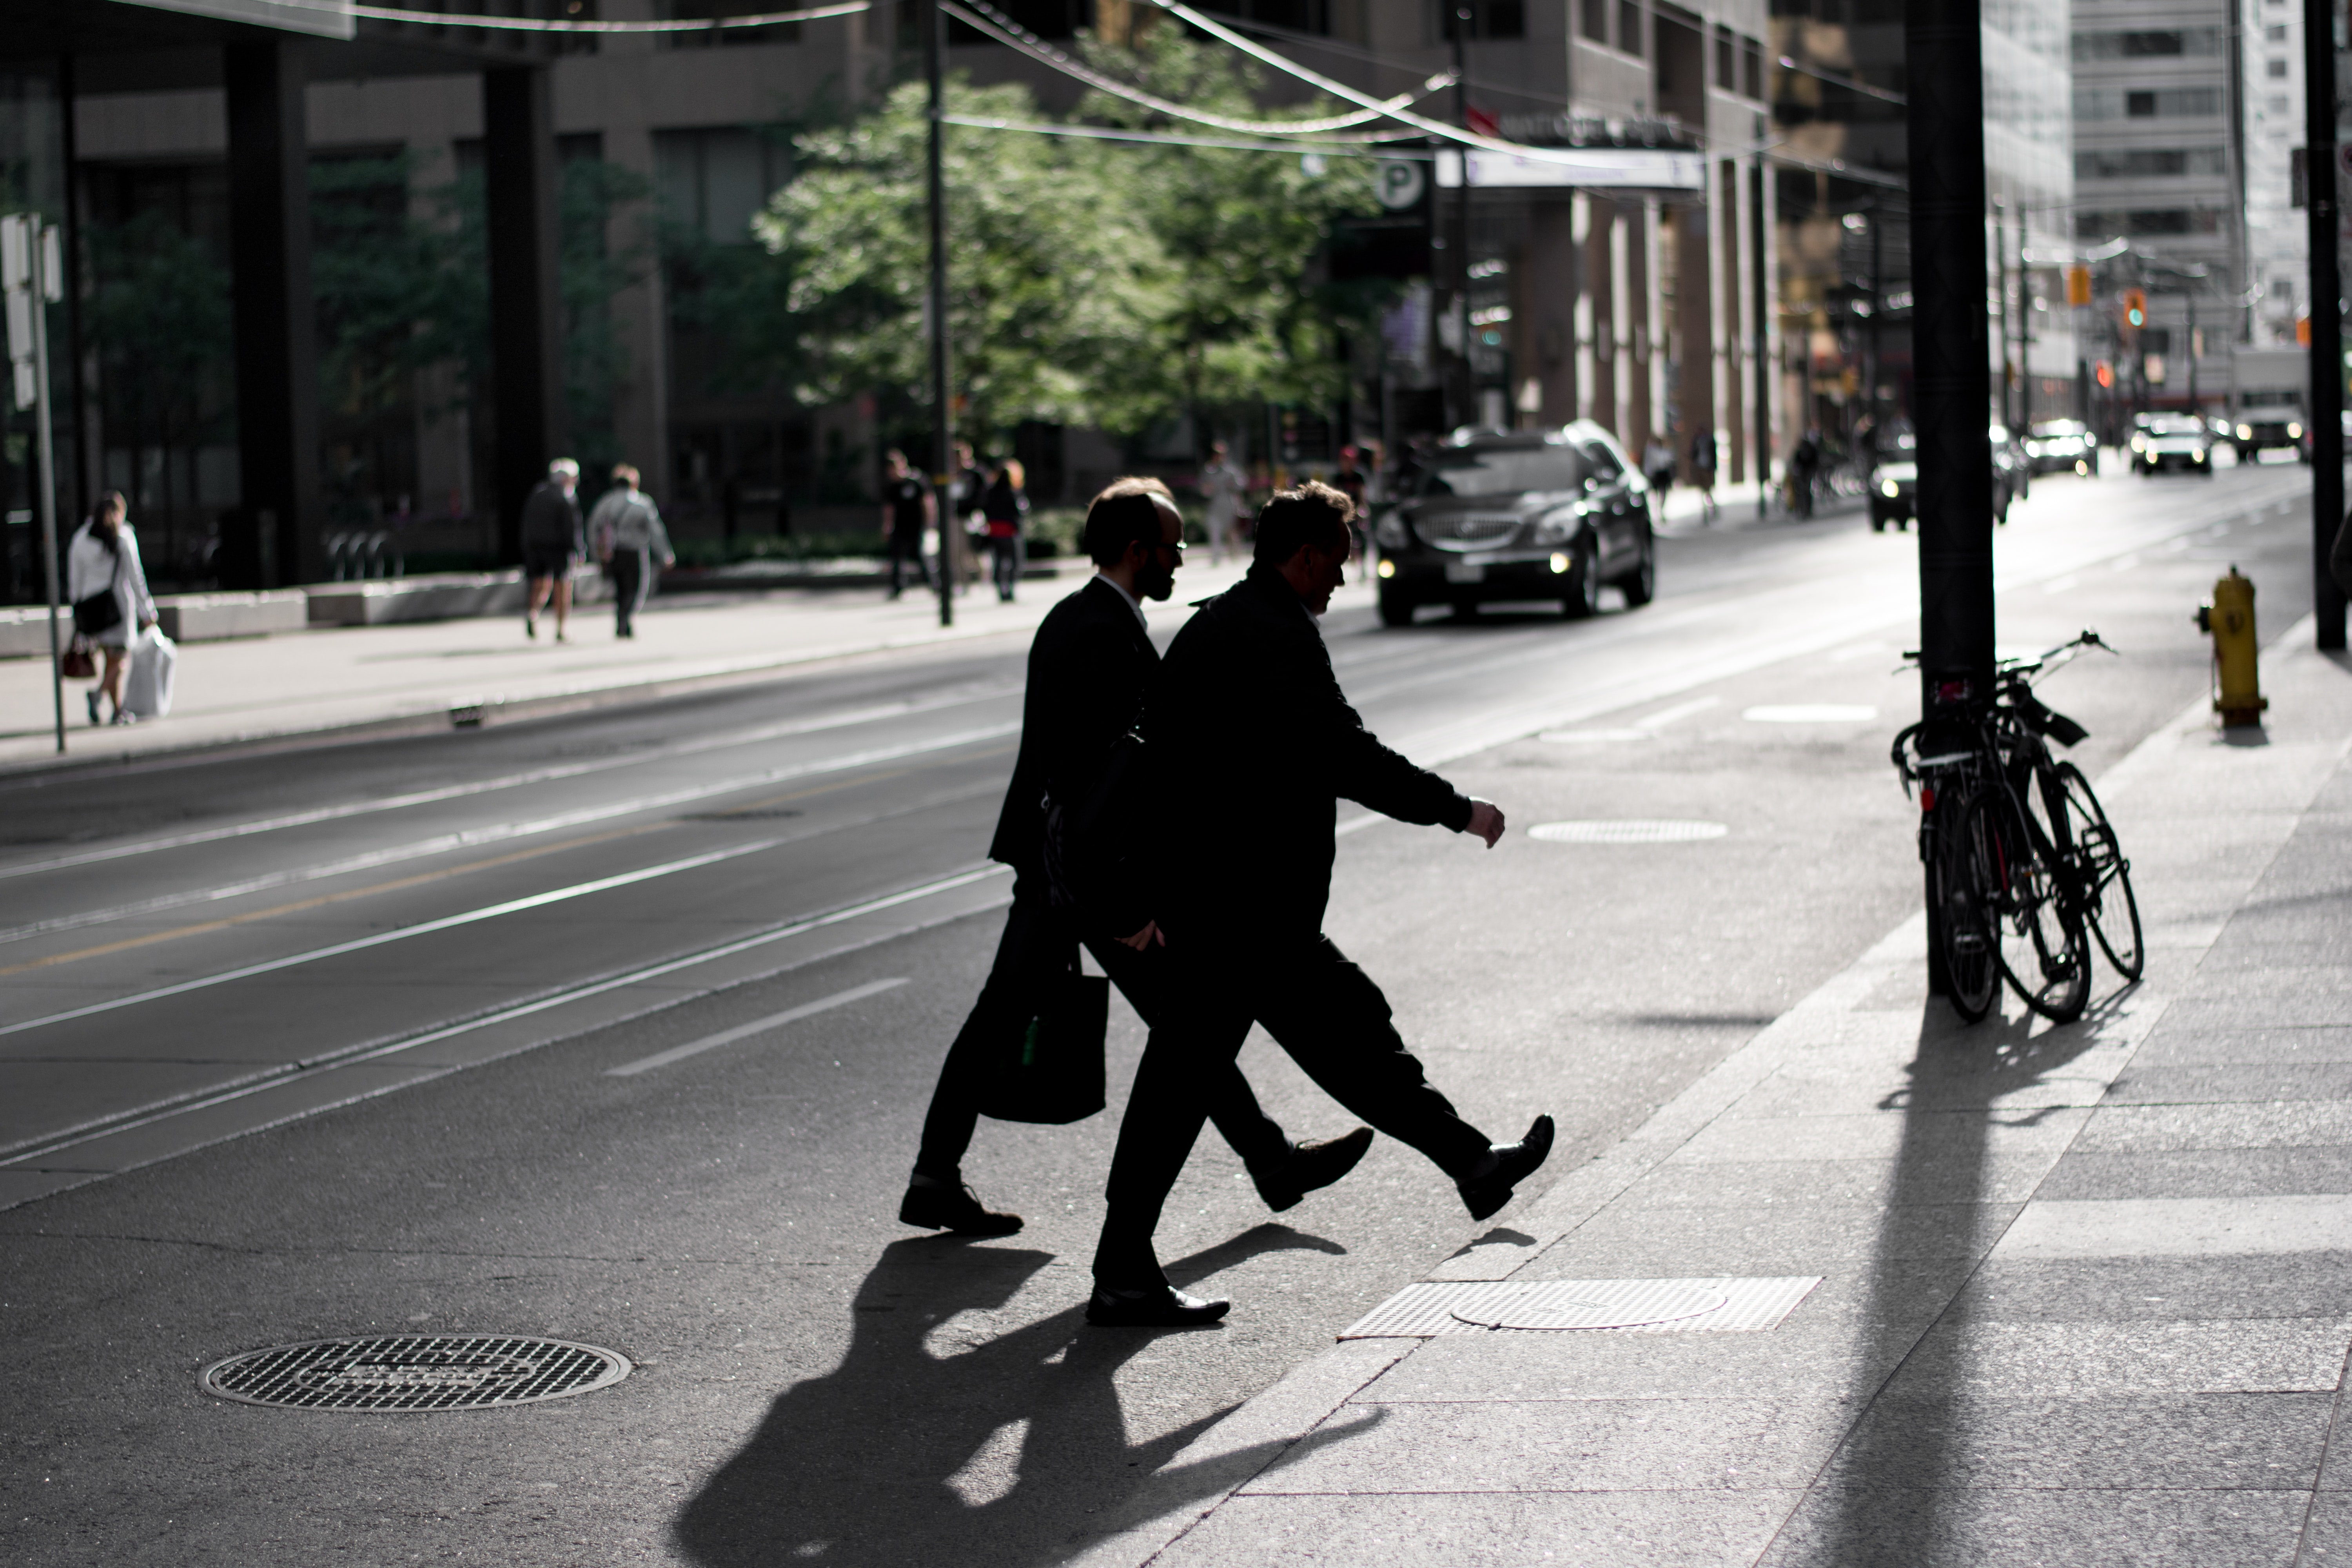 silhouette photography of man walking on road